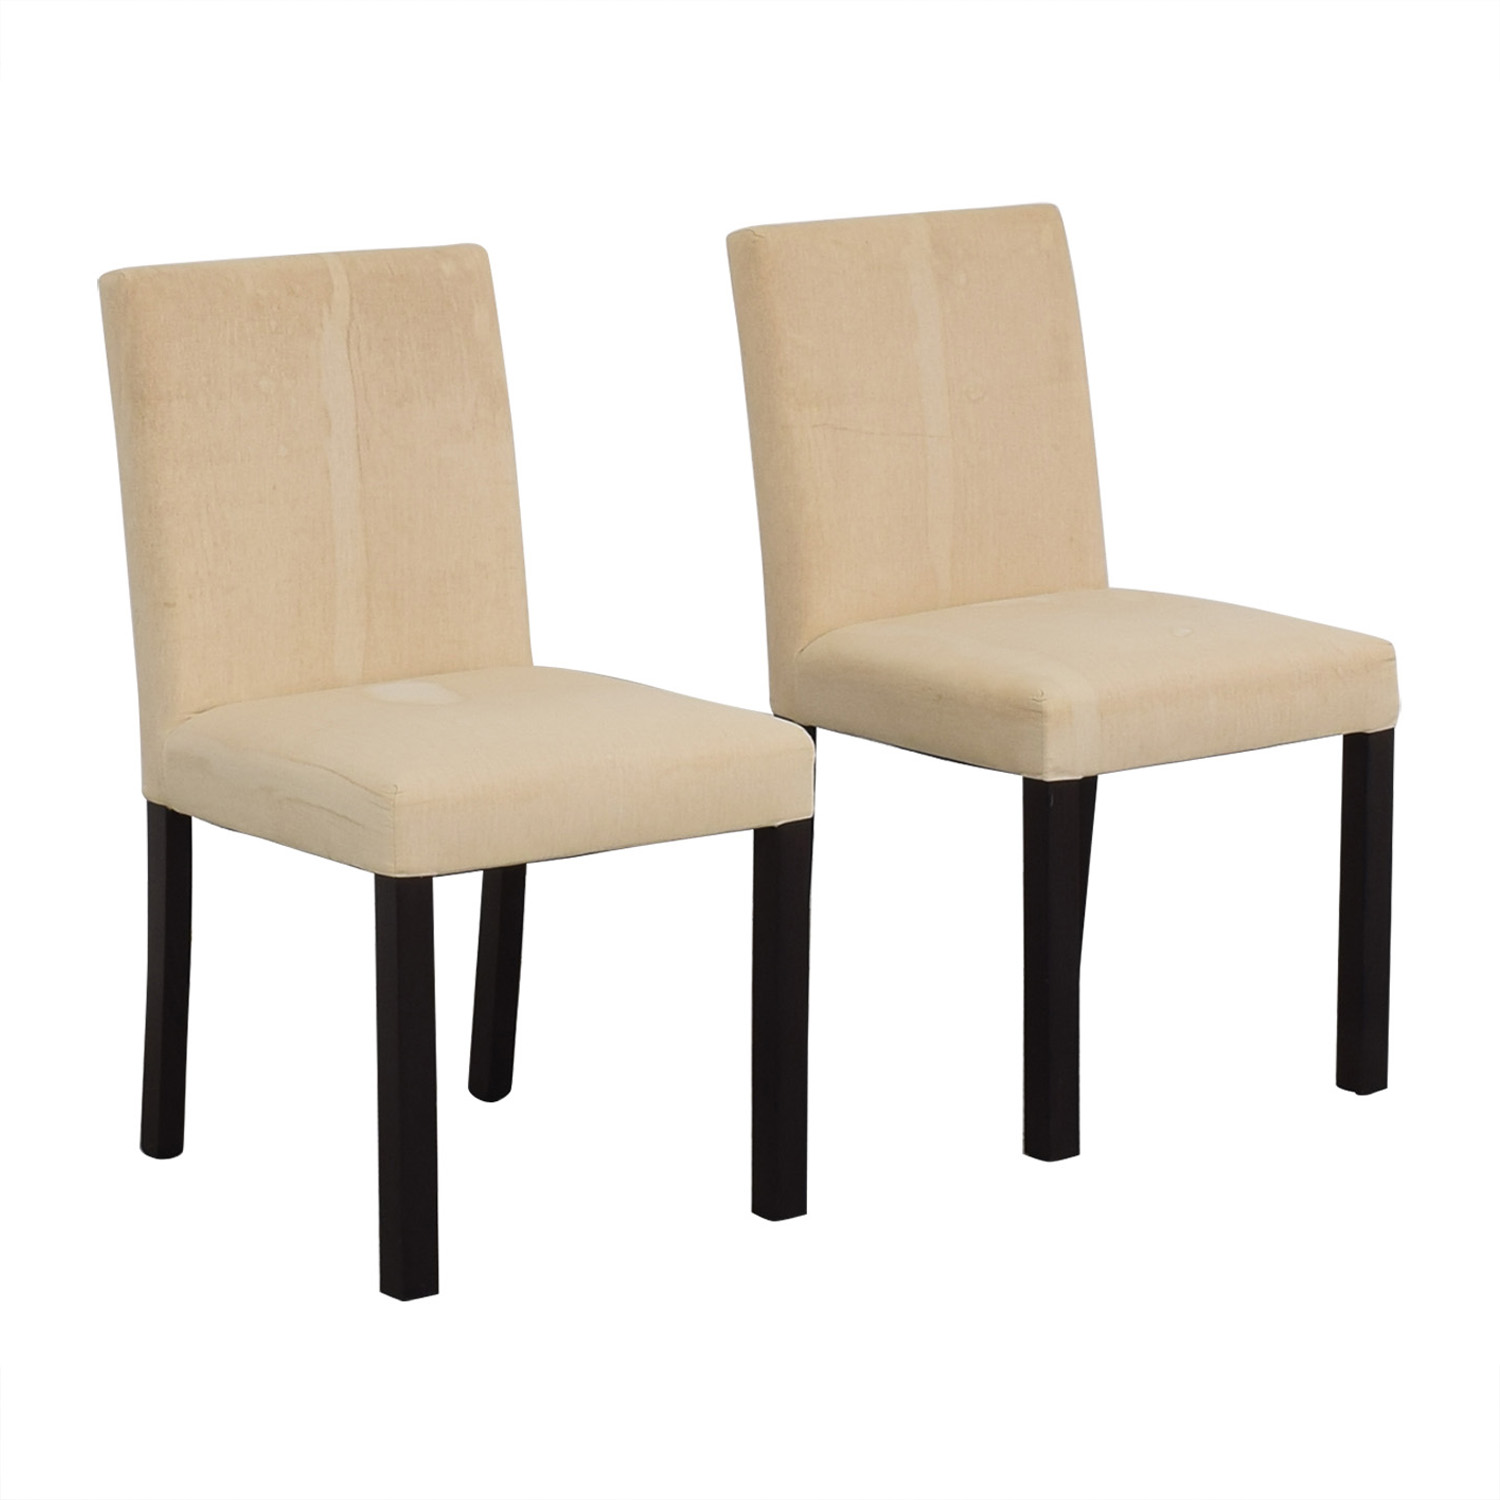 Crate & Barrel Crate & Barrel White Chairs for sale